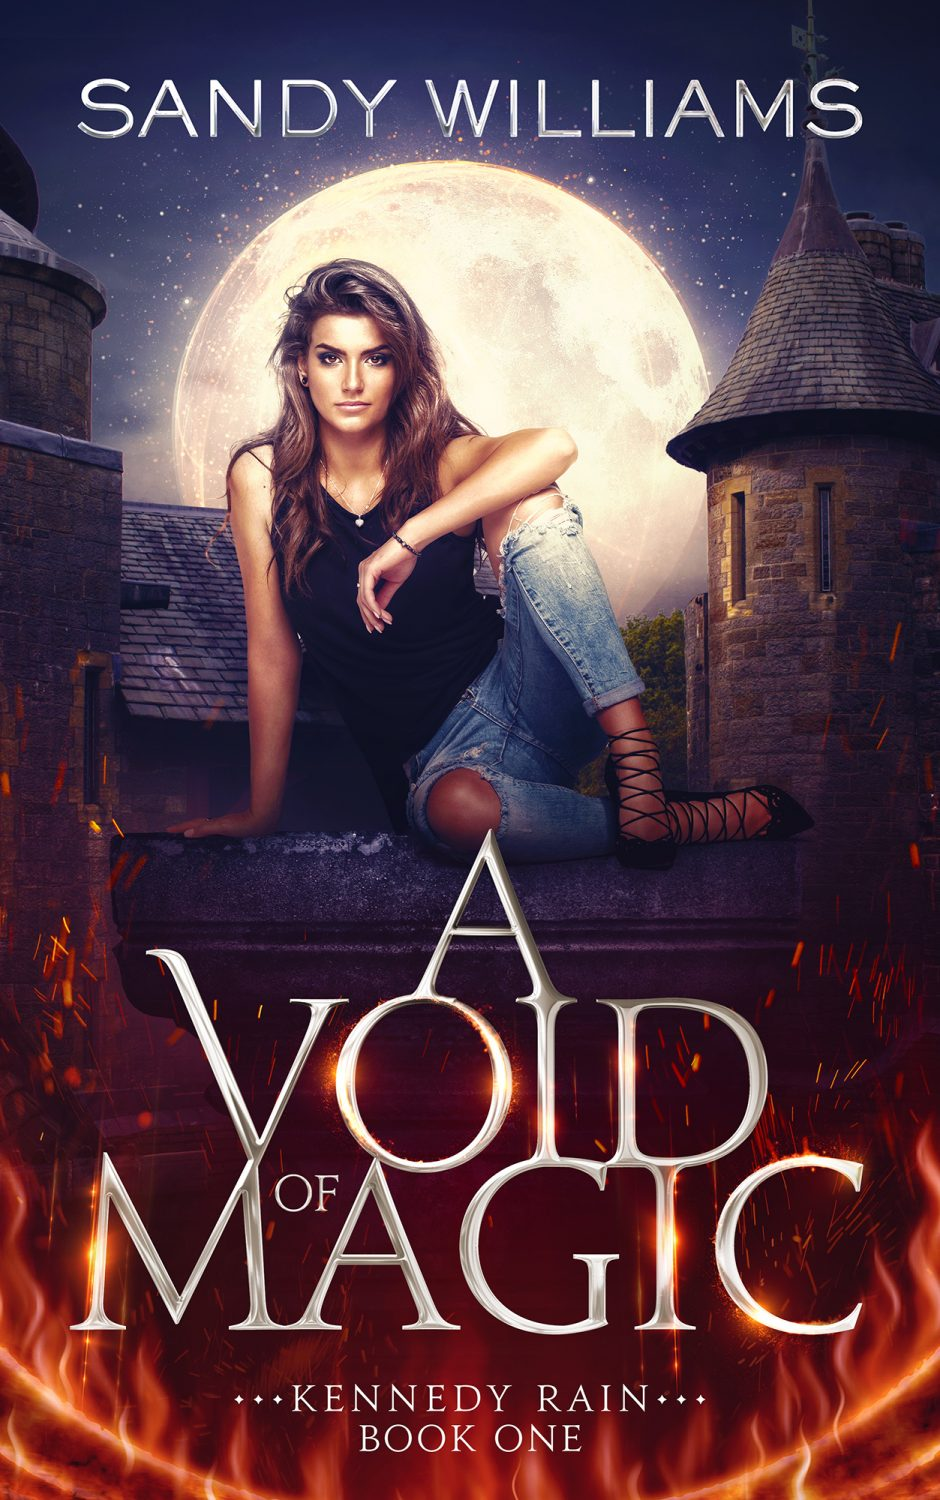 A Void of Magic Cover Art